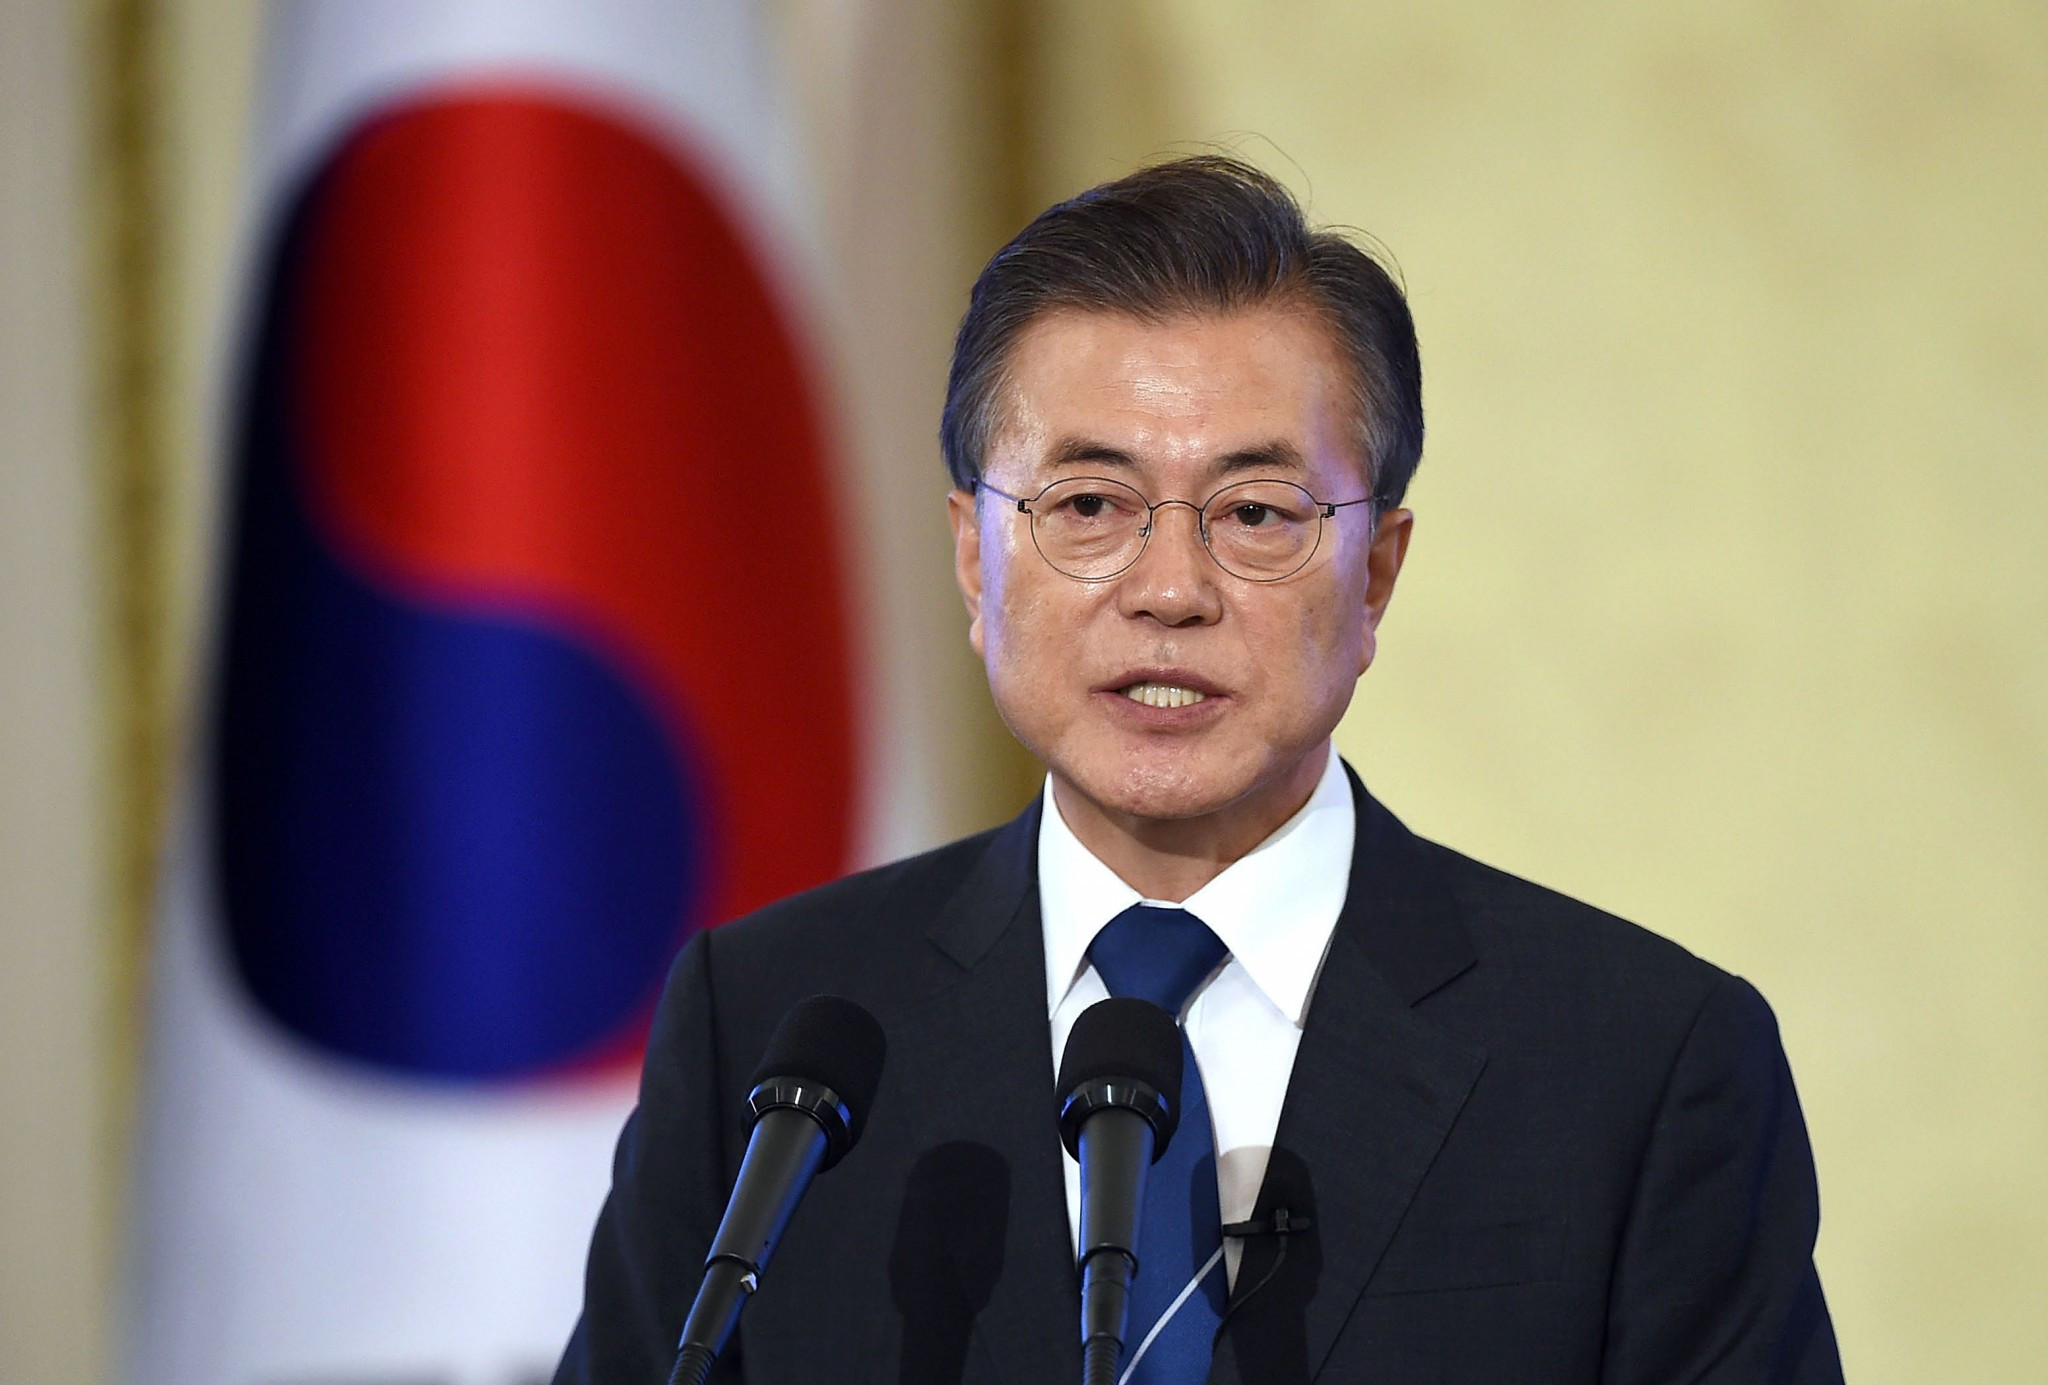 South Korean President Moon Jae-in will use a trip to New York City to attend the United Nations General Assembly to promote Pyeongchang 2018 ©Getty Images